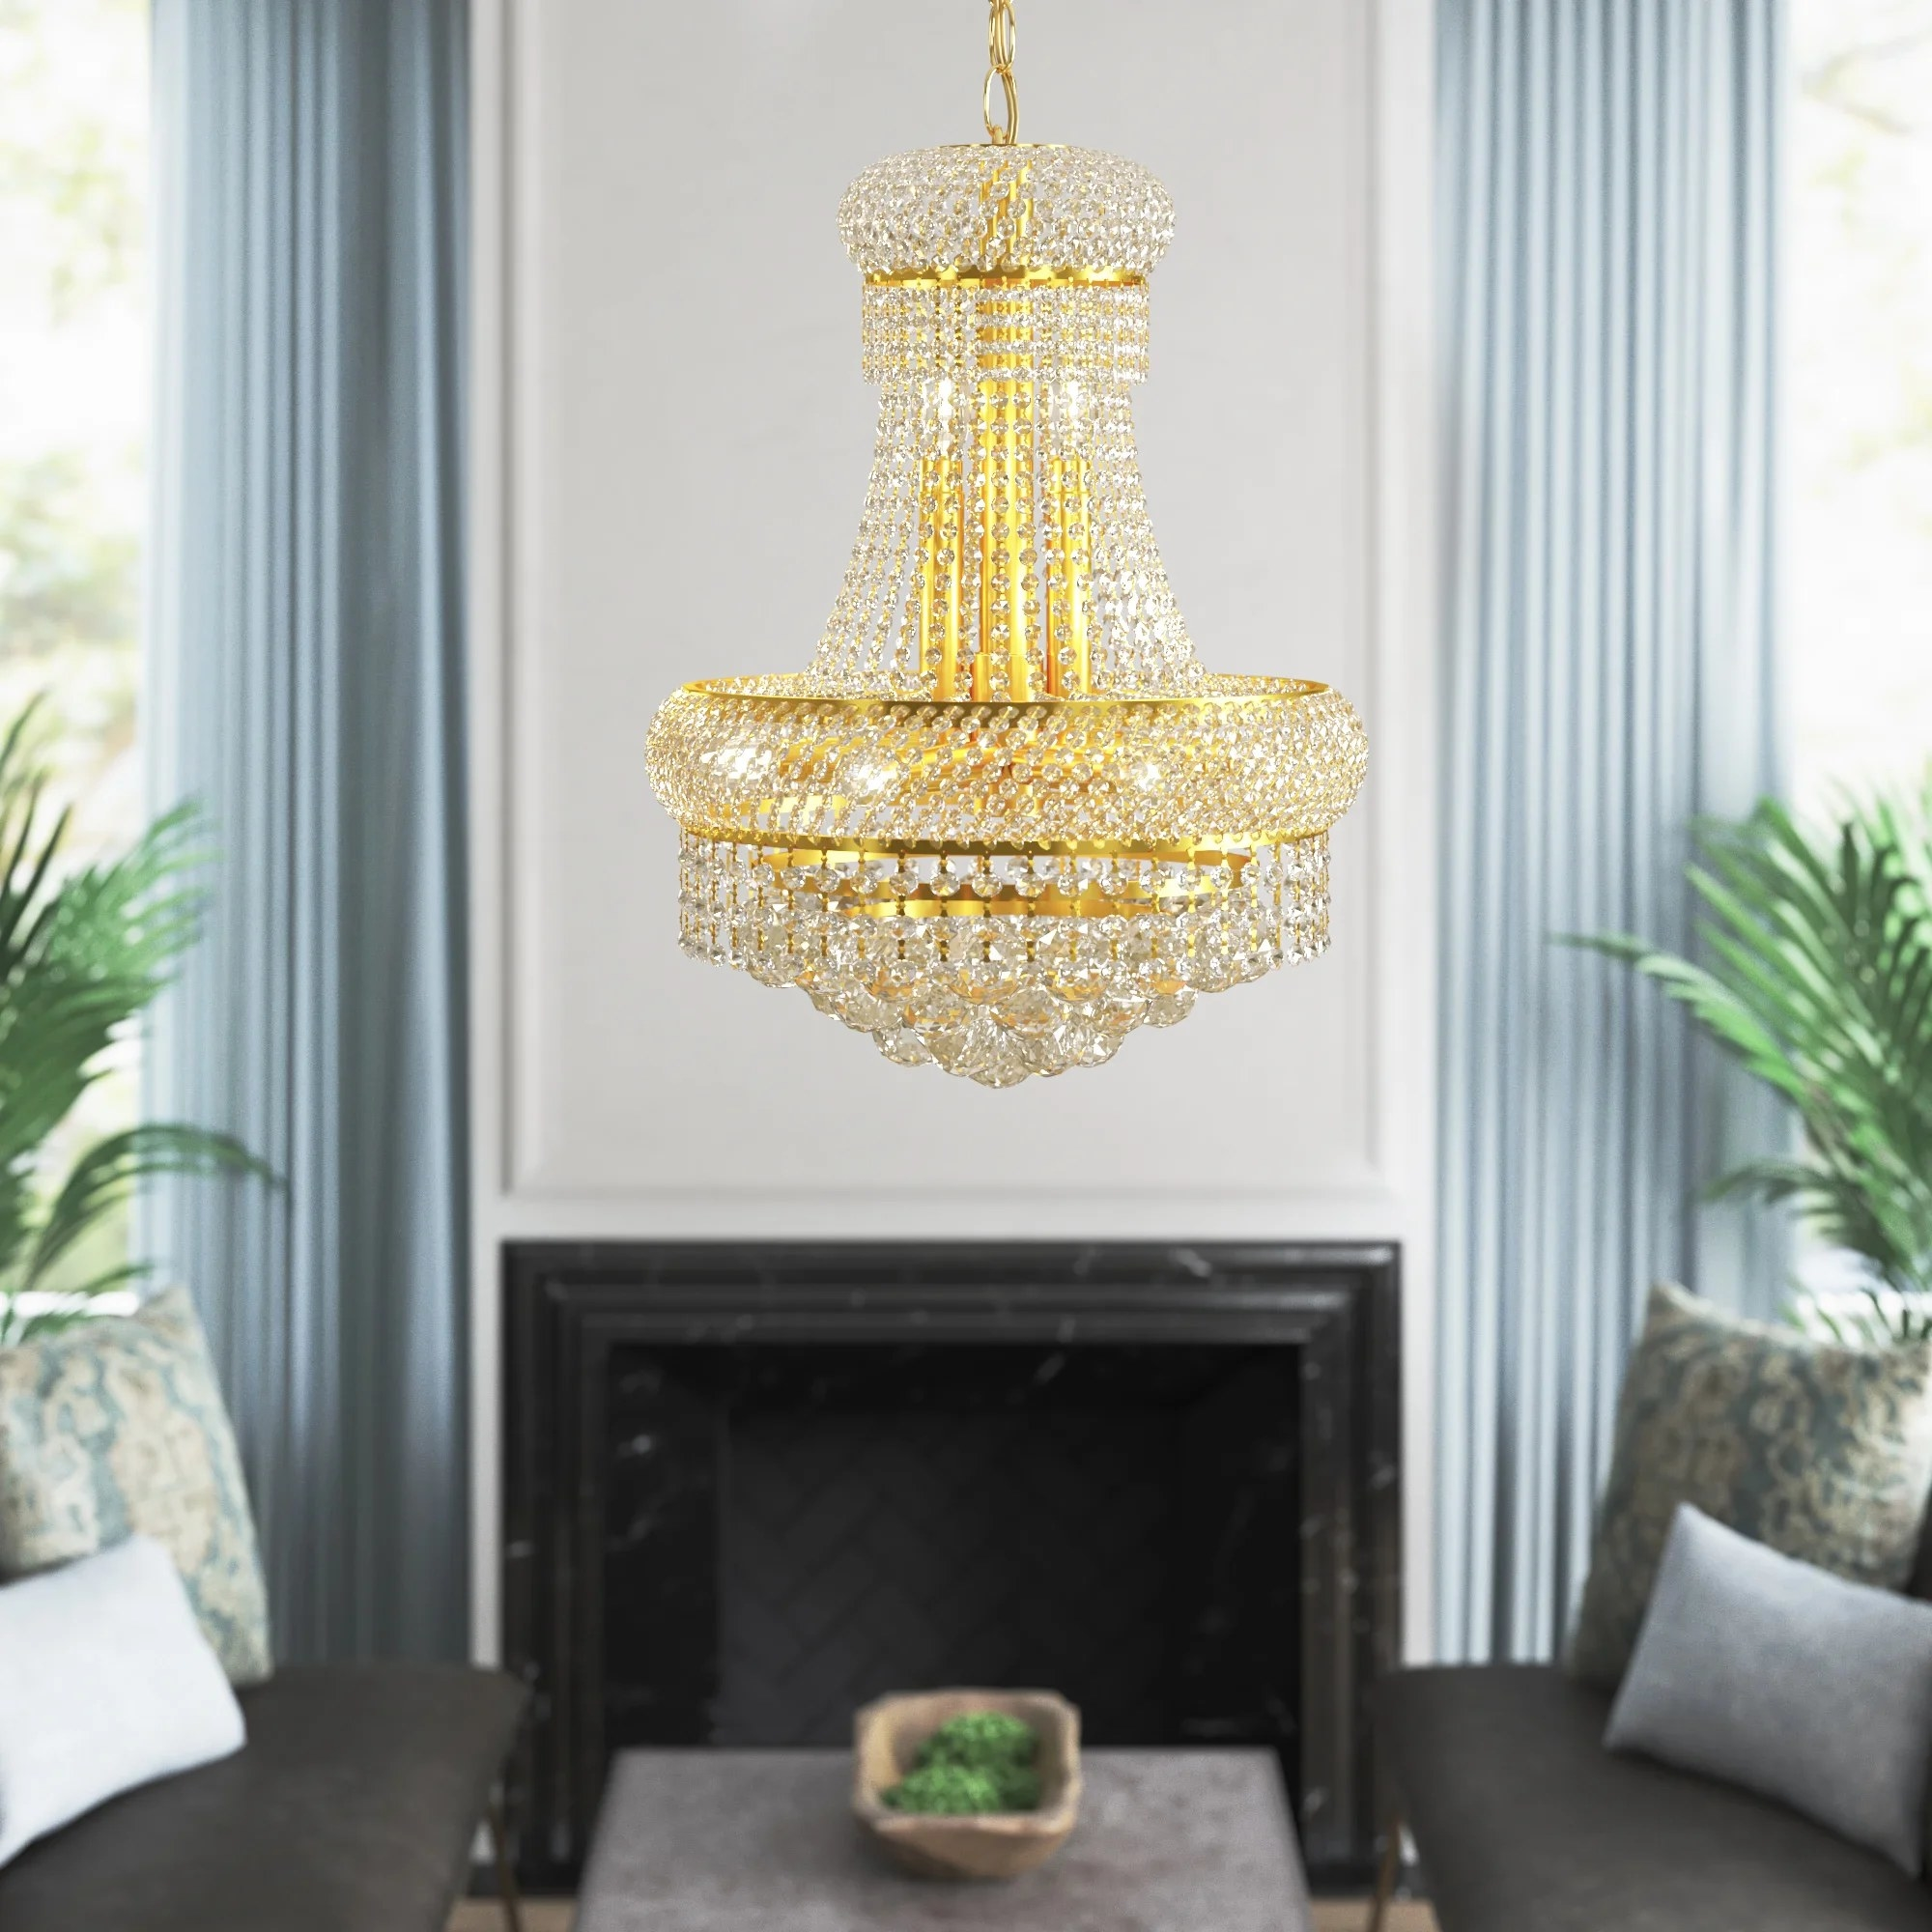 The gold chandelier with gradually cascading crystals hanging from the ceiling in a living room